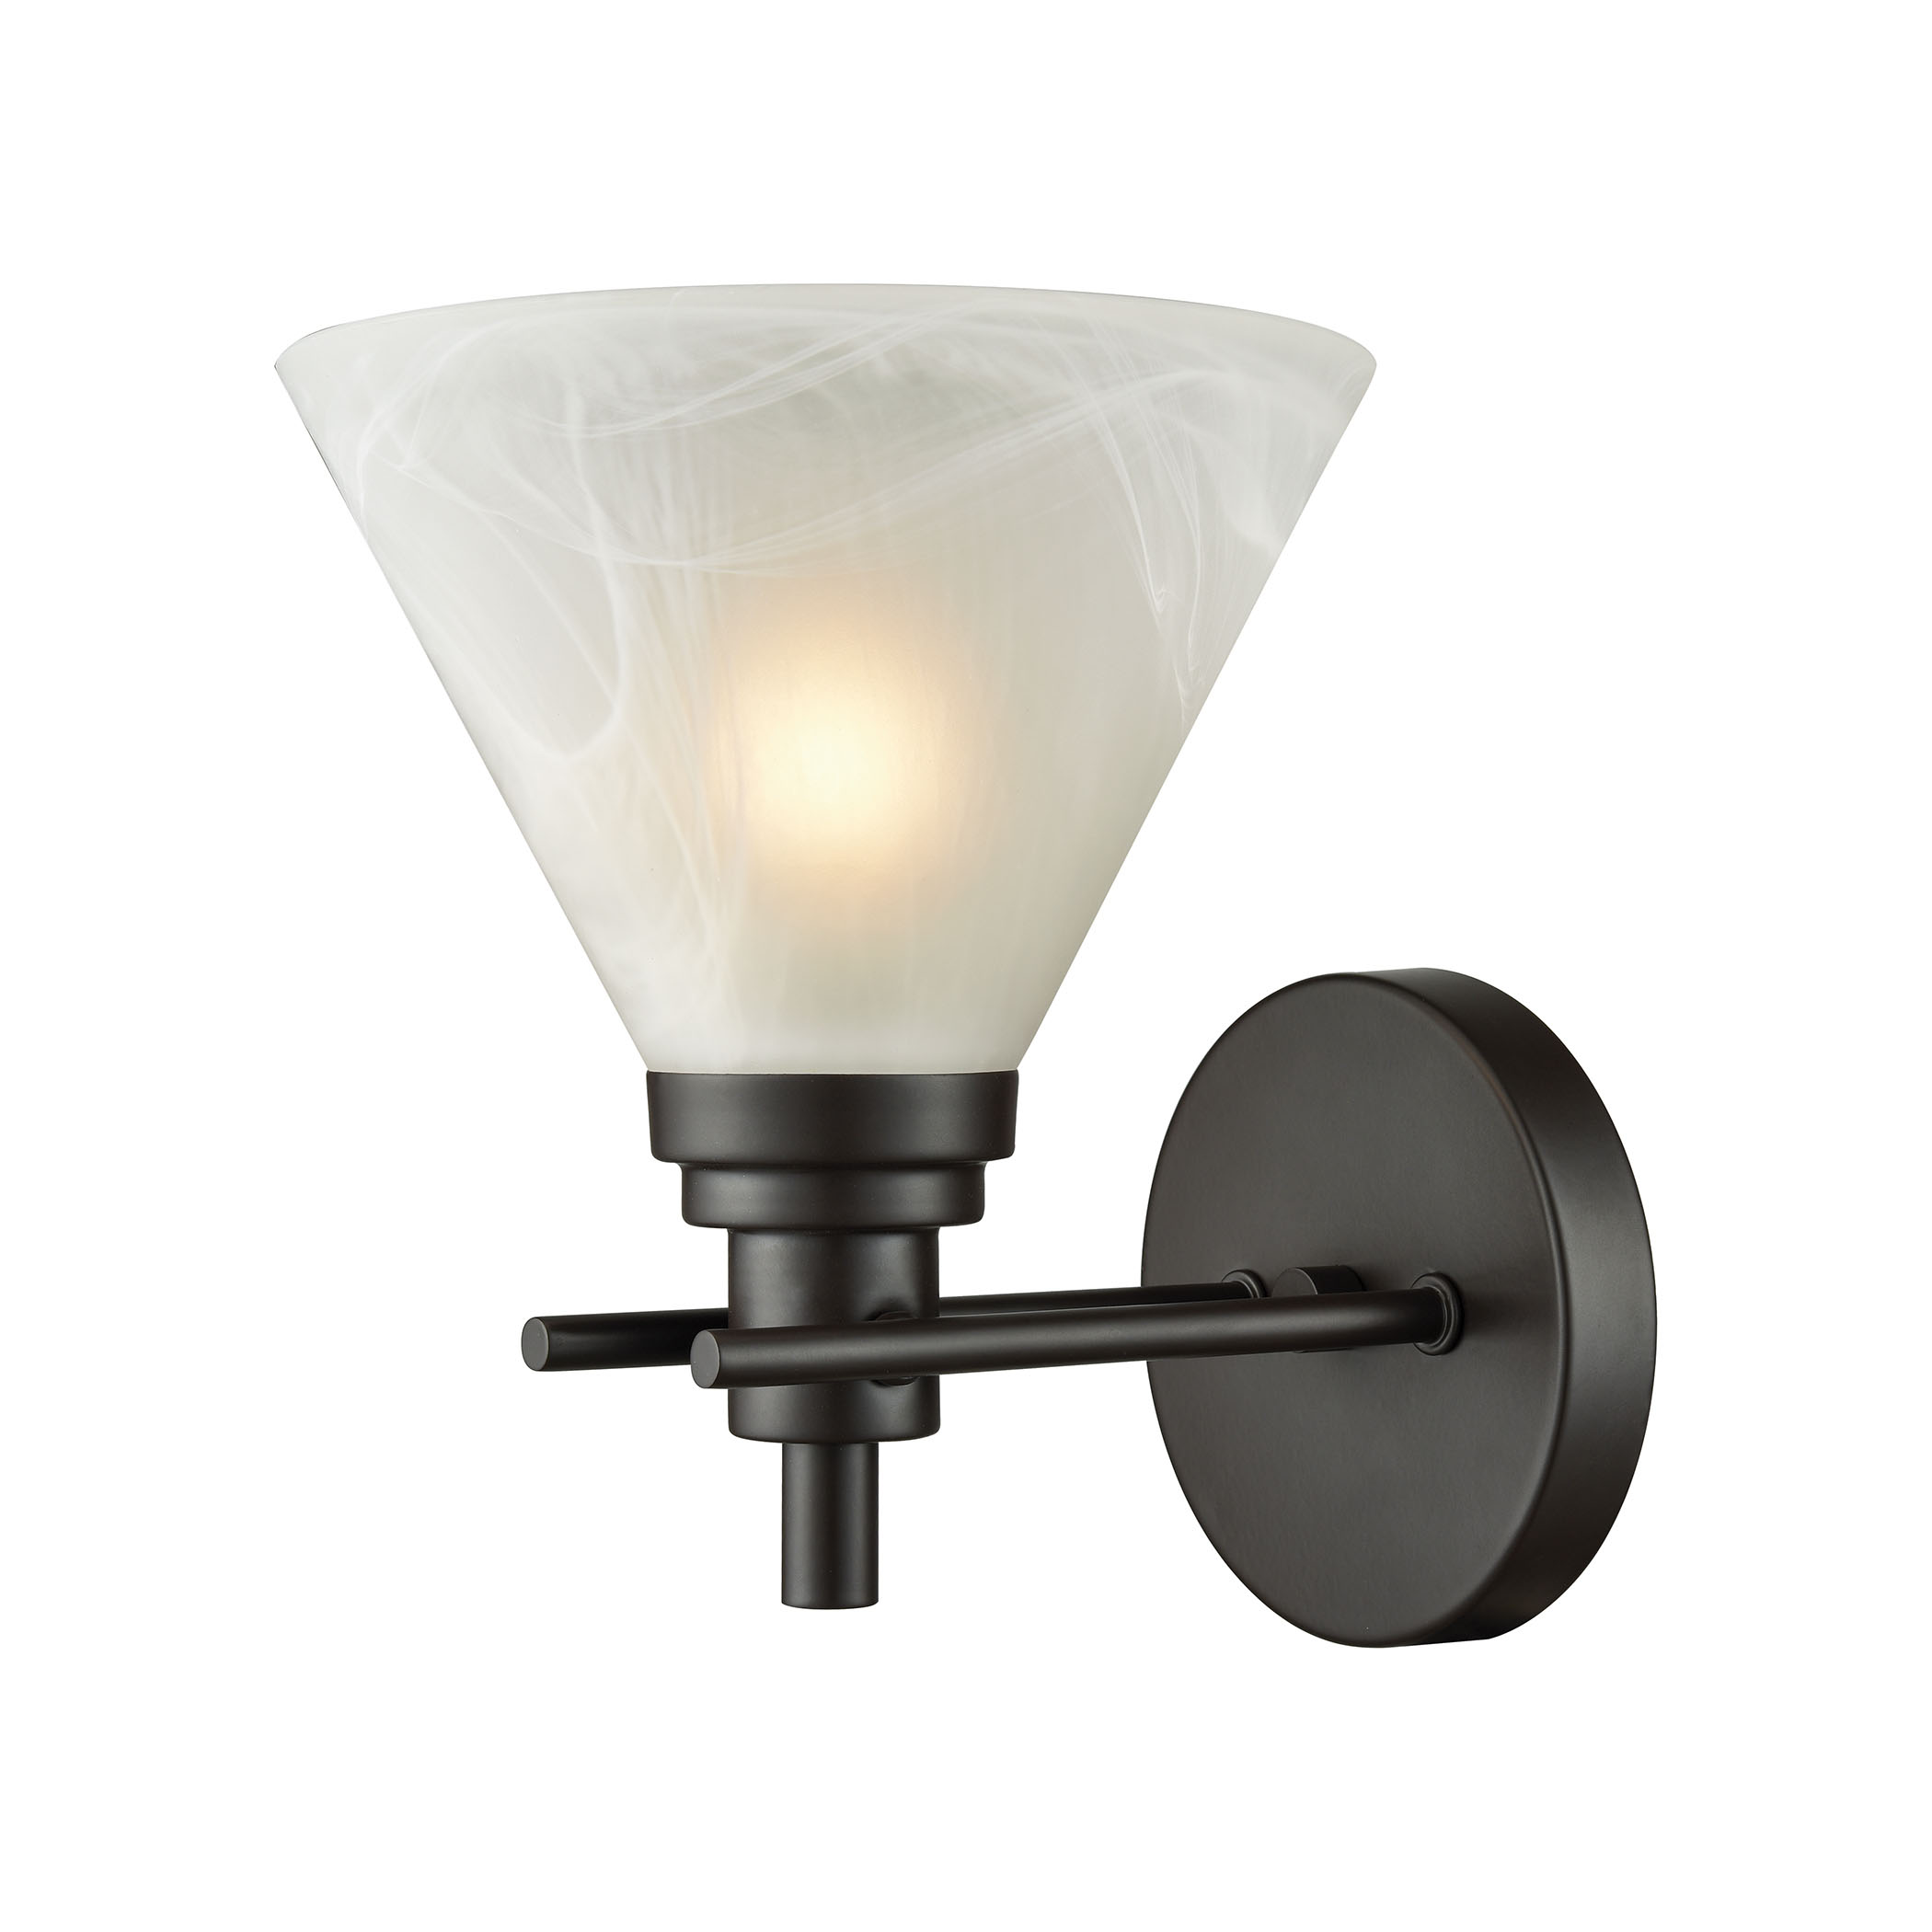 Pemberton 1 Light Vanity in Oil Rubbed Bronze with White Marbleized Glass